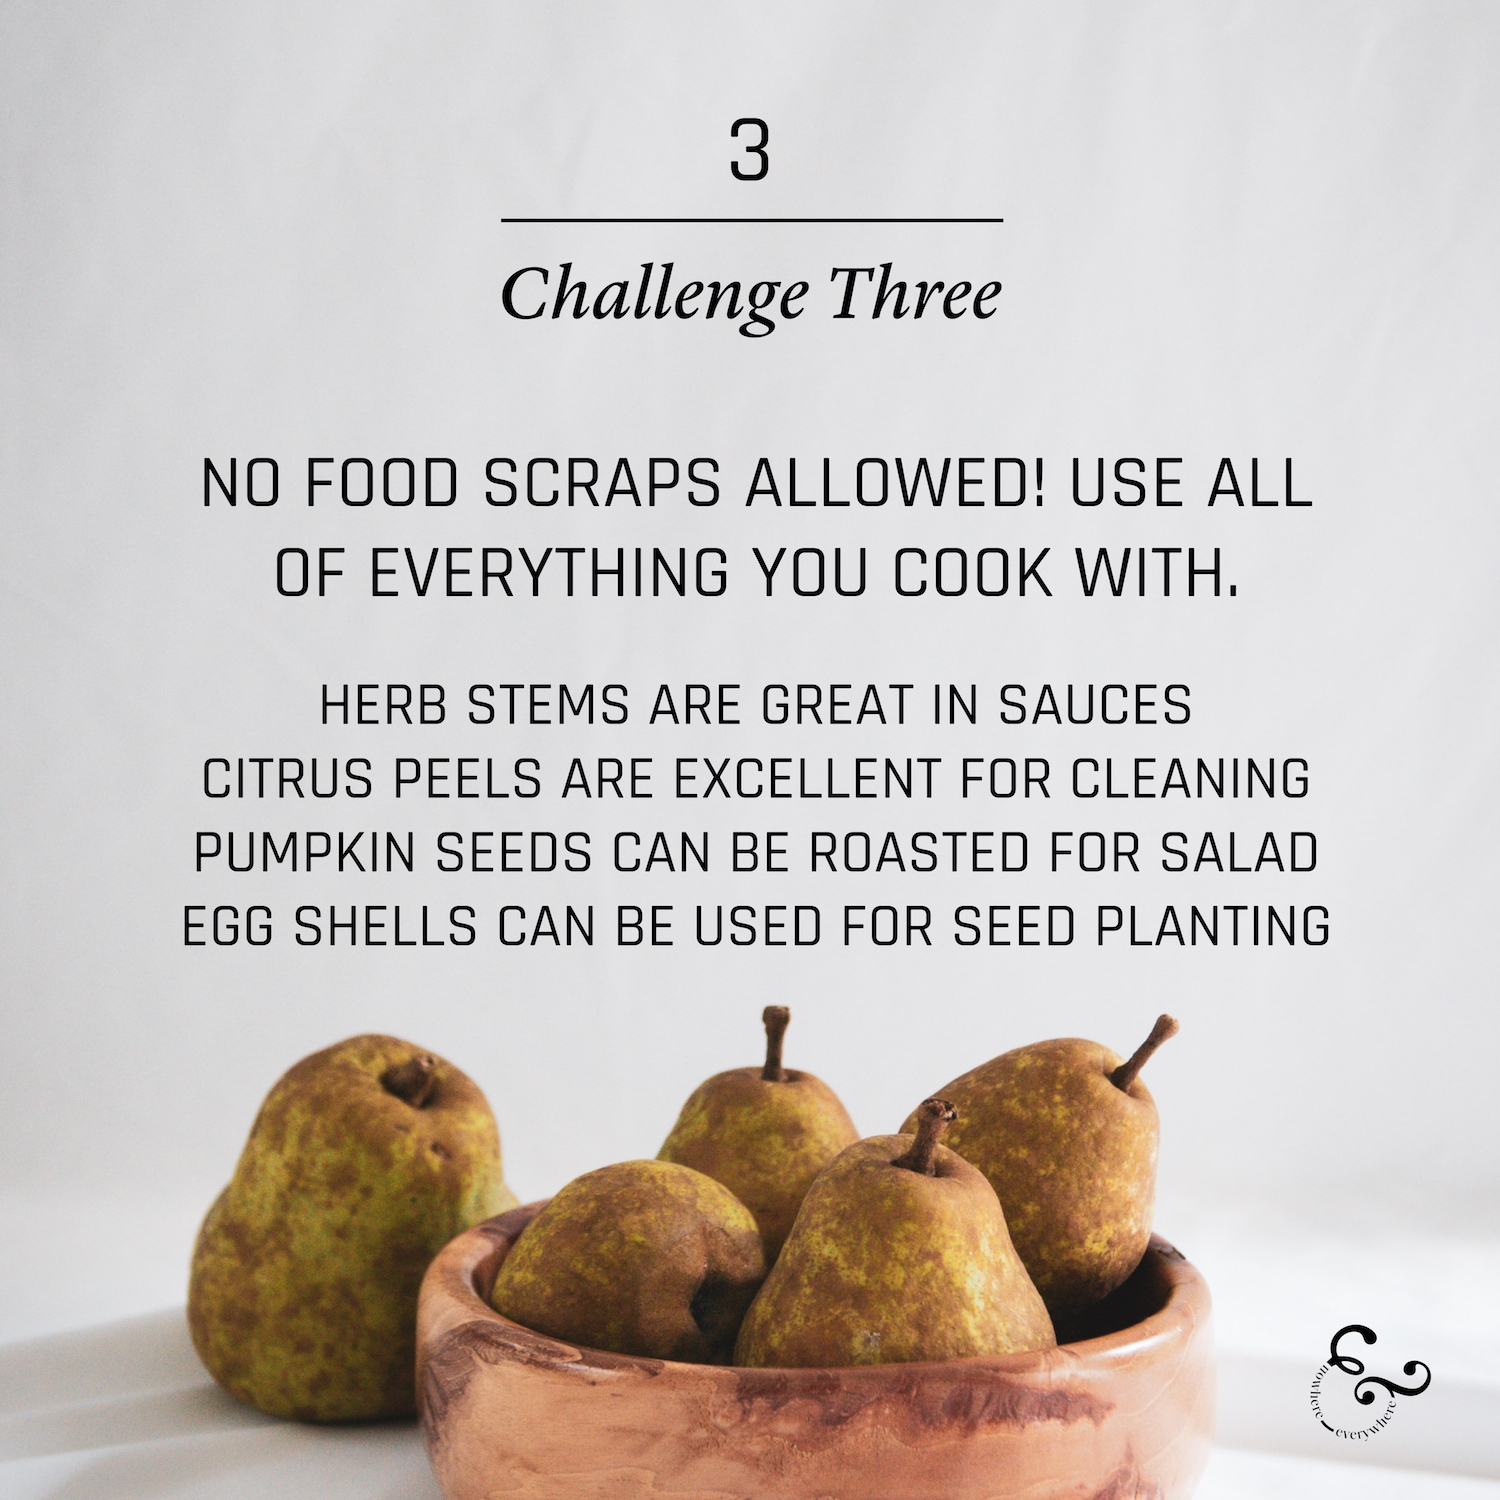 9 food waste challenges - Nowhere & Everywhere - Climate change reduce food waste budget